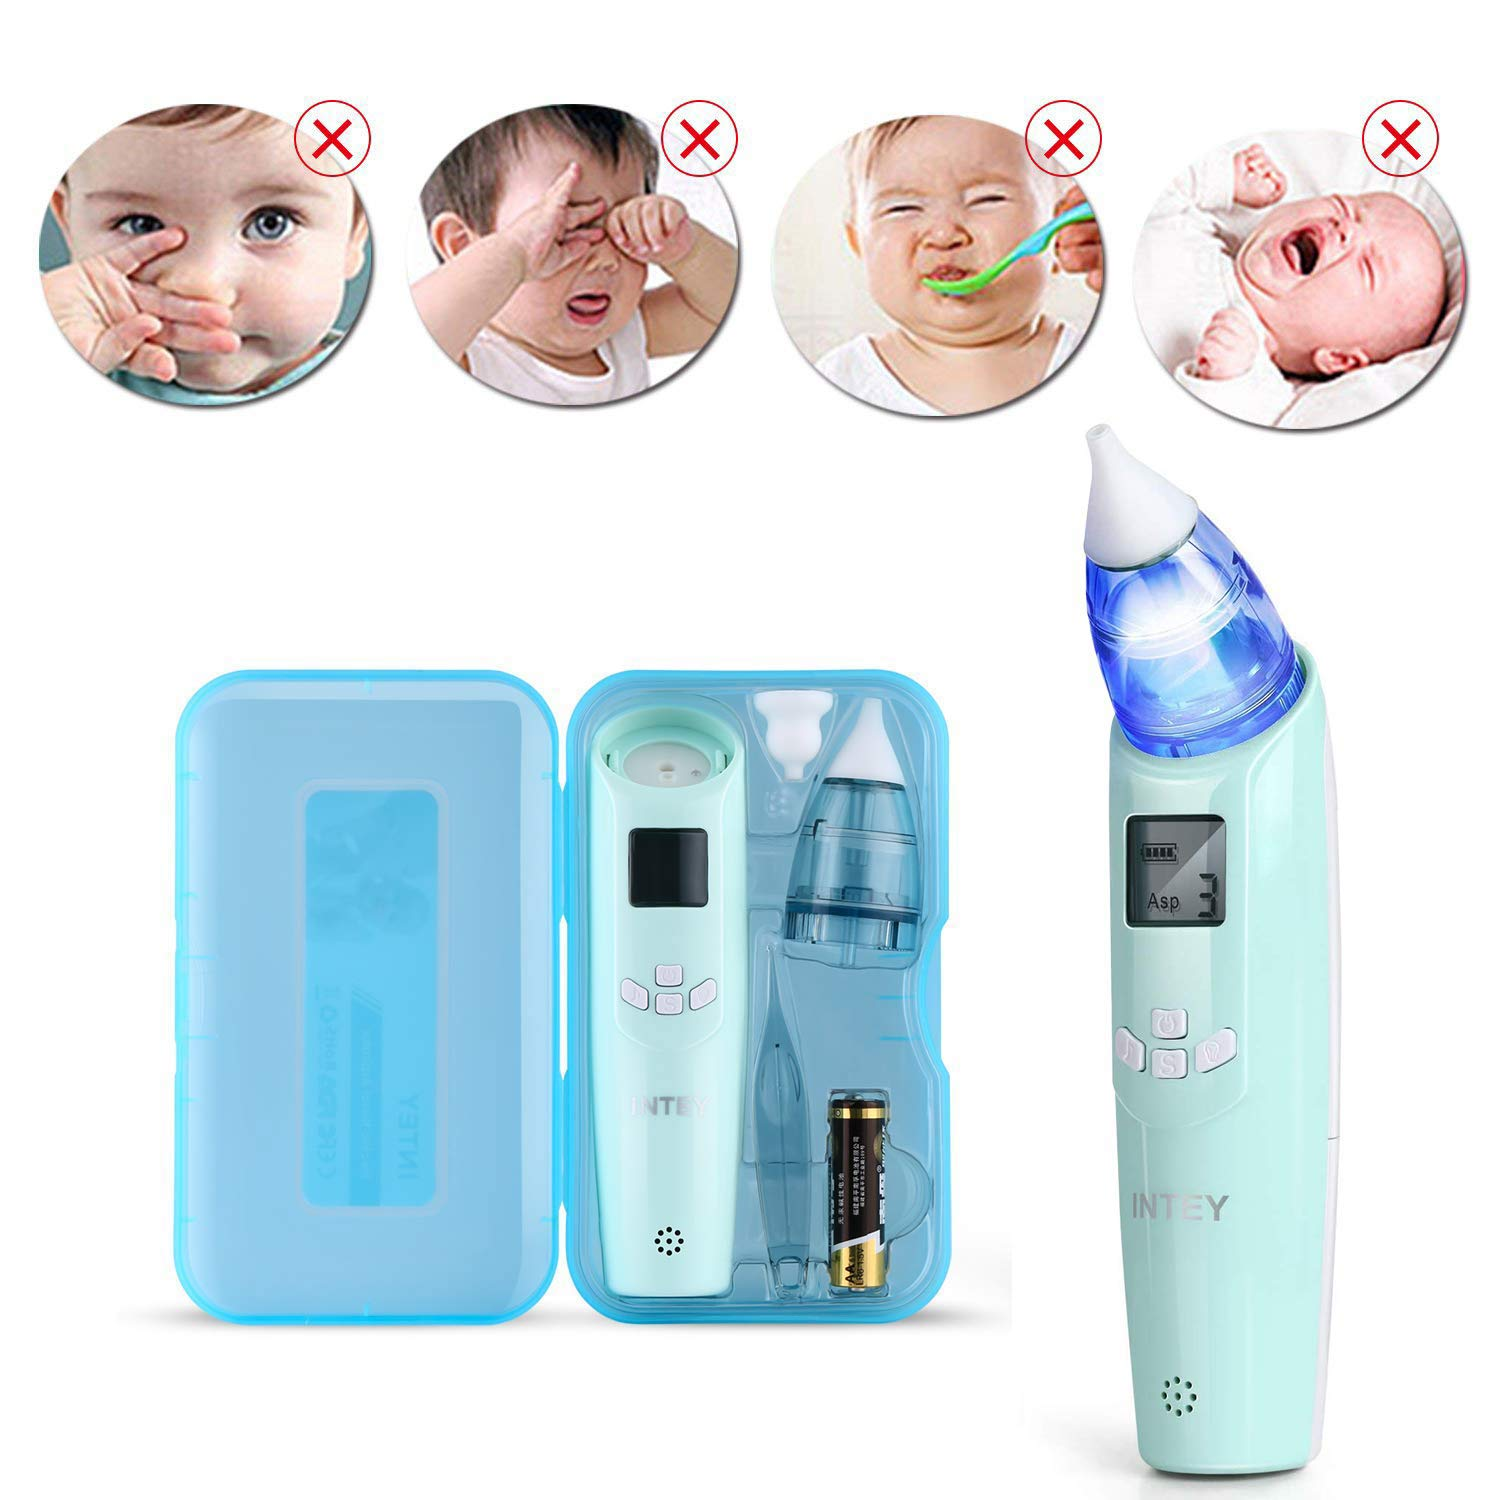 INTEY Baby Nasal Aspirator Electric for Newborns, Toddlers - Nose Vacuum Cleaner with 3 Strength Suction, 2 Sizes of Nose Tips, Music & Lights, LCD Display, Safe and Hygienic (Battery Included)